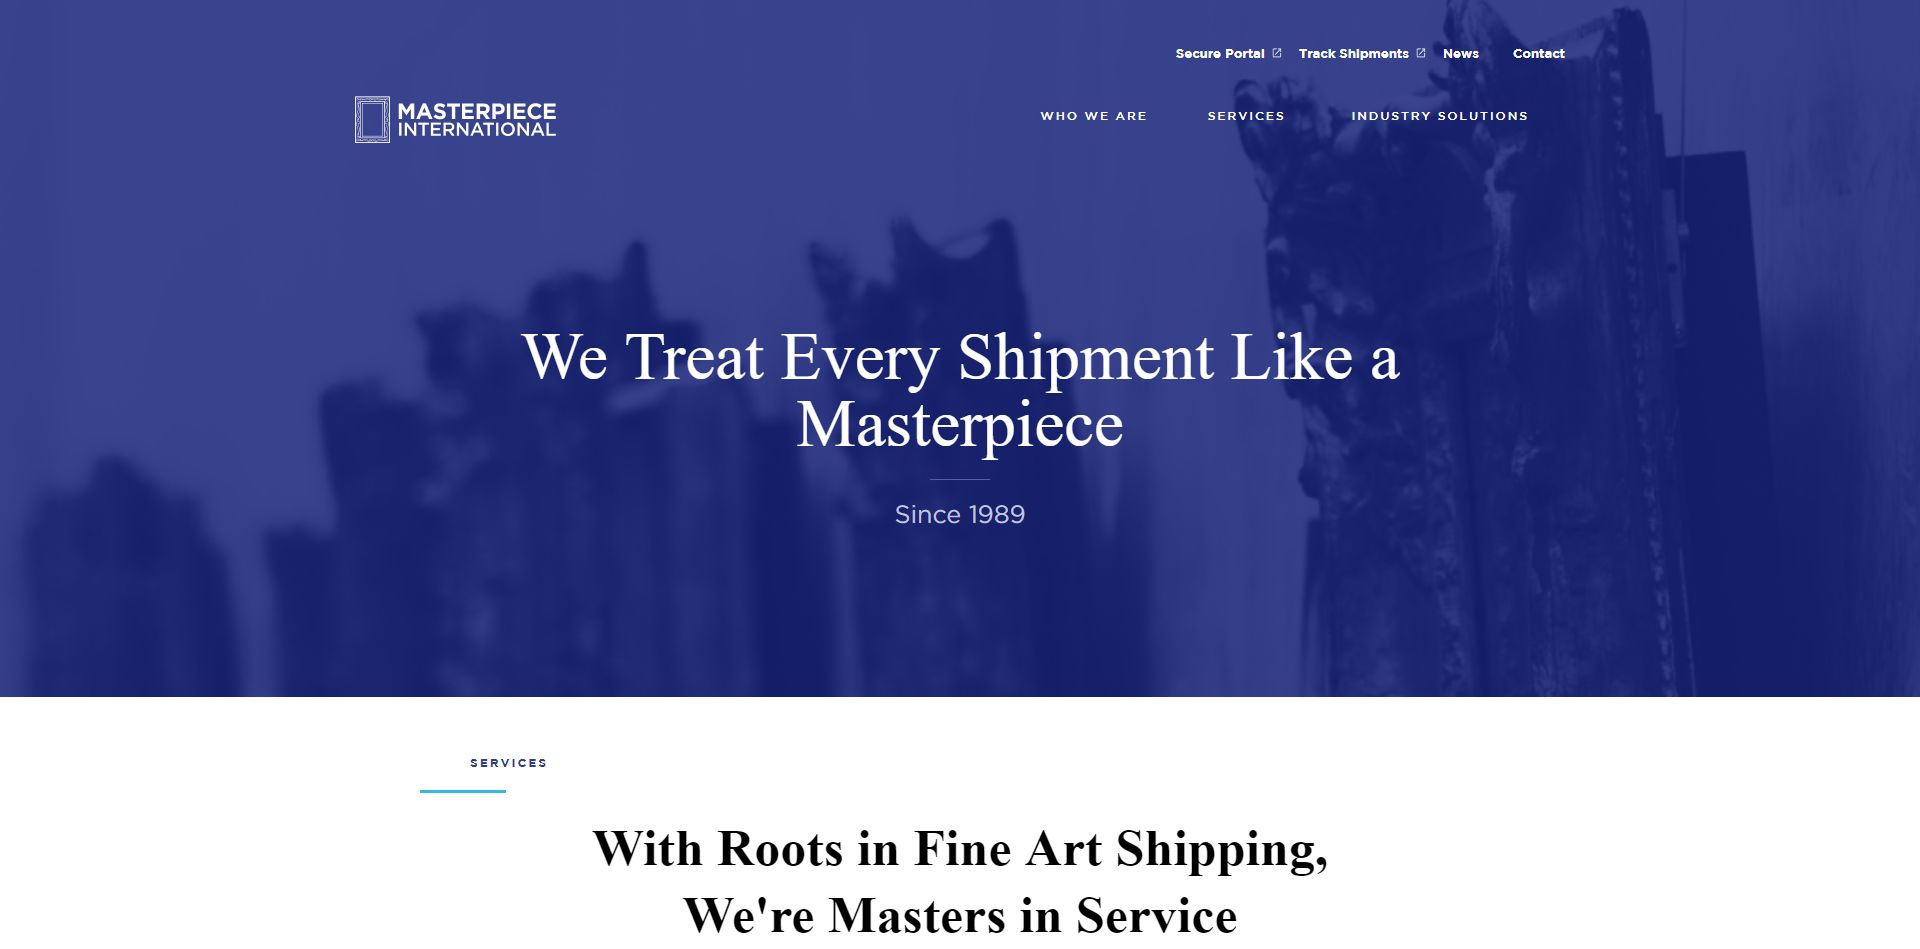 Portfolio - Masterpiece International Home Page